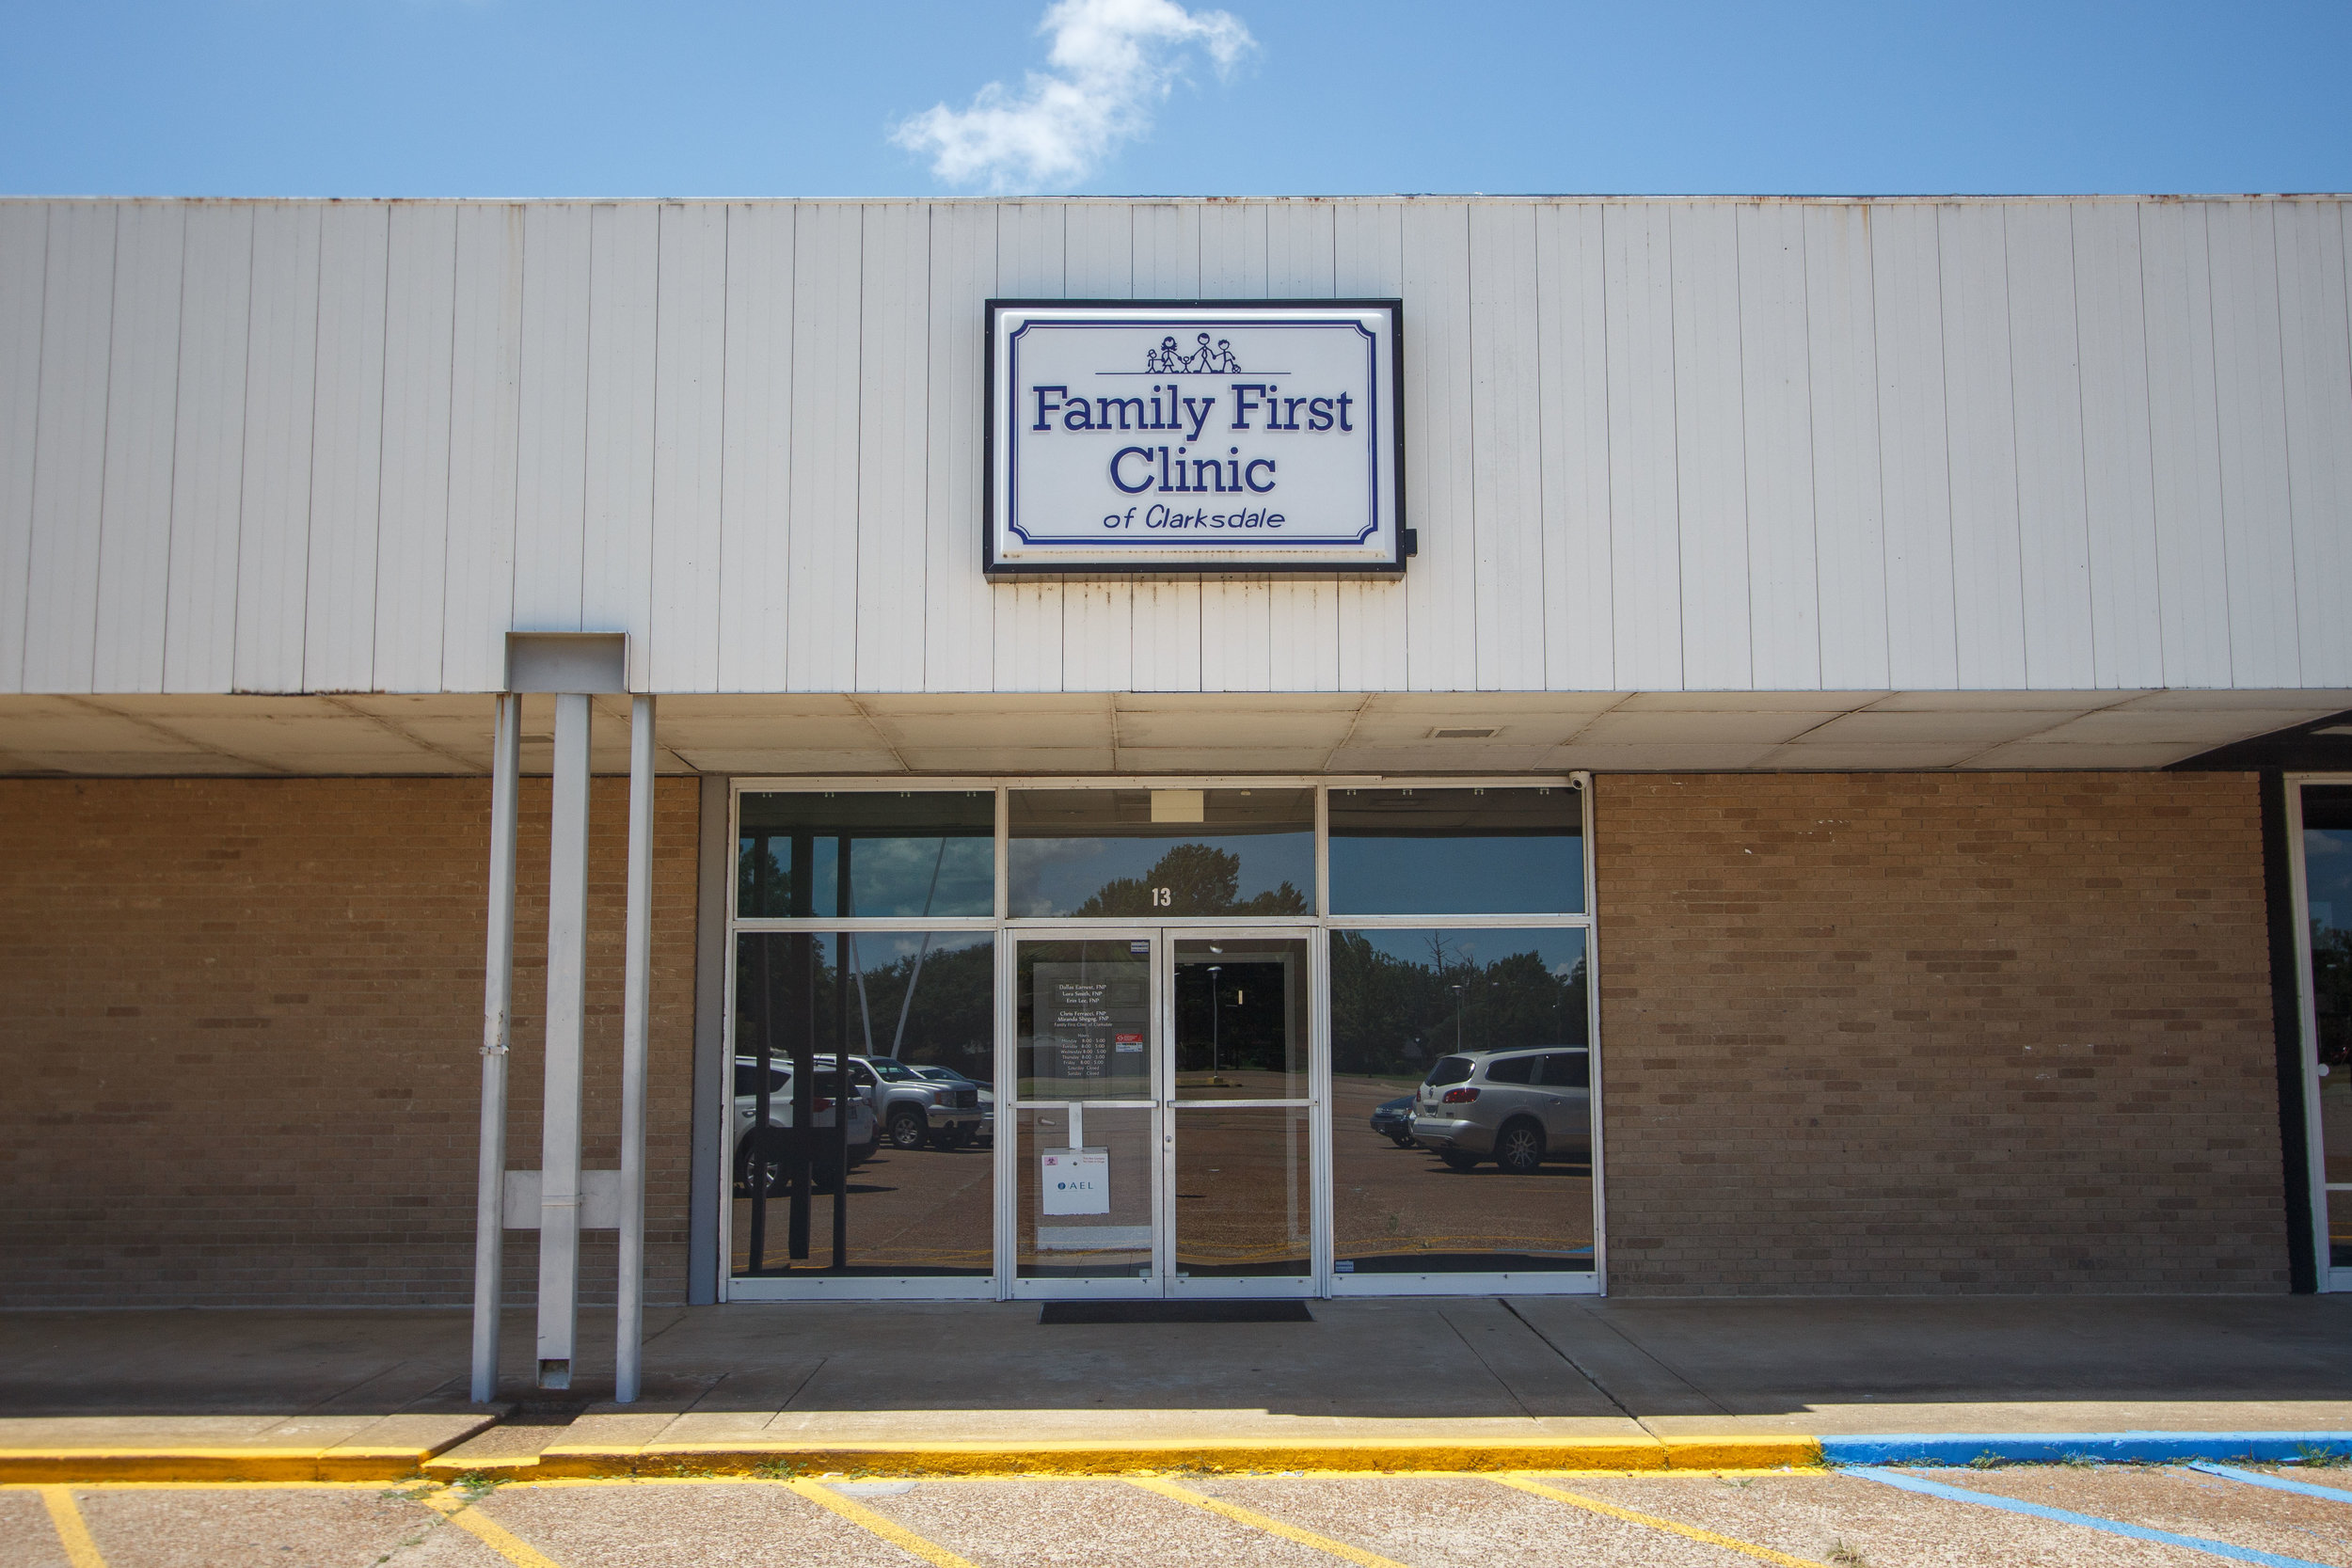 Family First Clinic of clarksdale - 1015 Lee Drive, Suite 13 (Westgate Shopping Center) Clarksdale , MS 38614